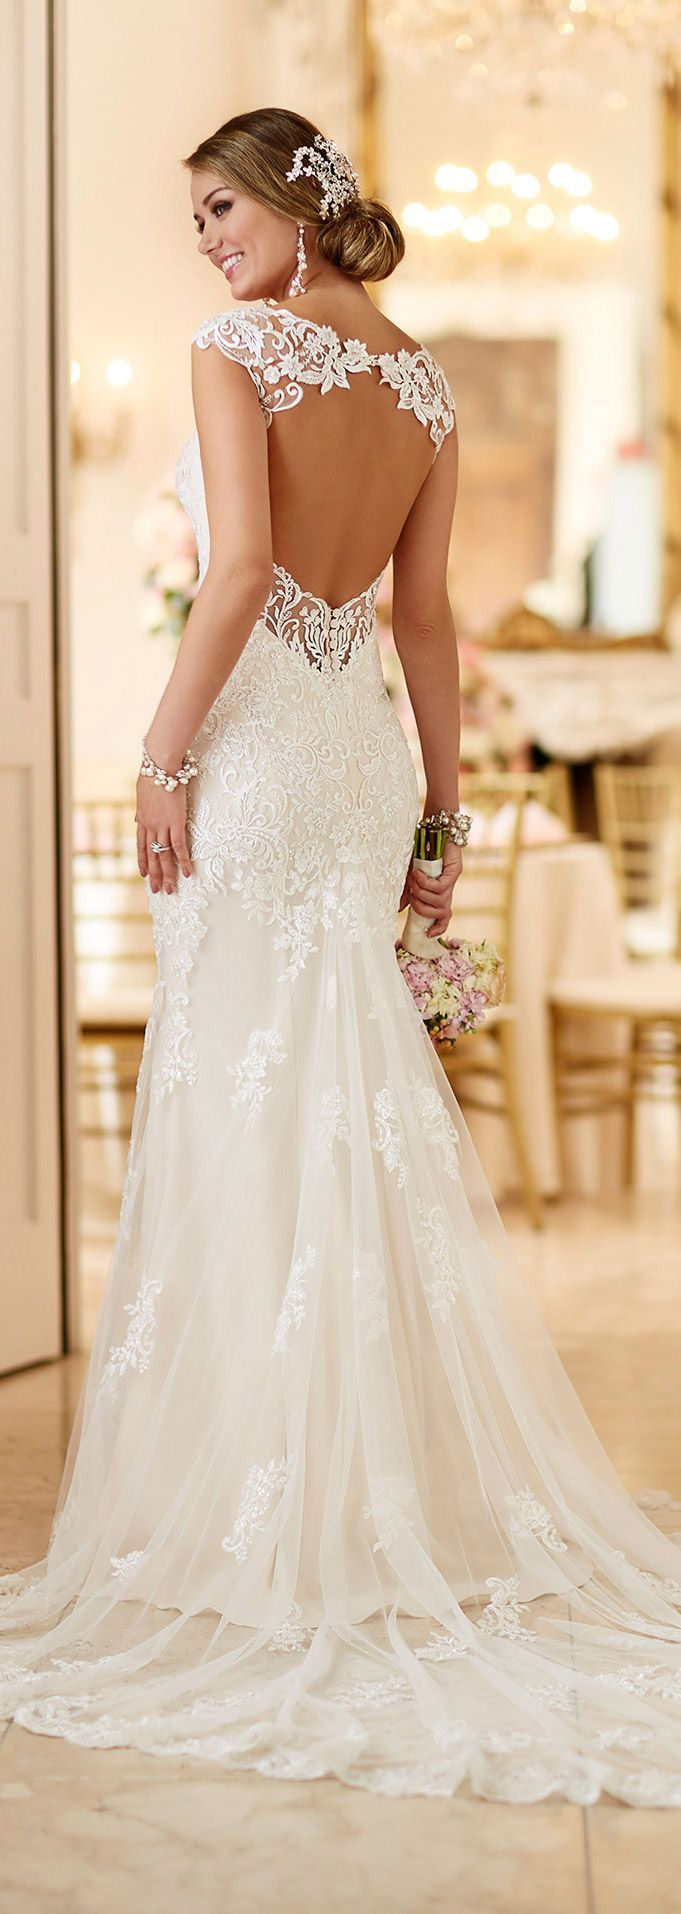 What a luxury dress!! That is one of a kind! Want help planning your destination wedding? Look no further, call me at 770.469.7370 to get started.